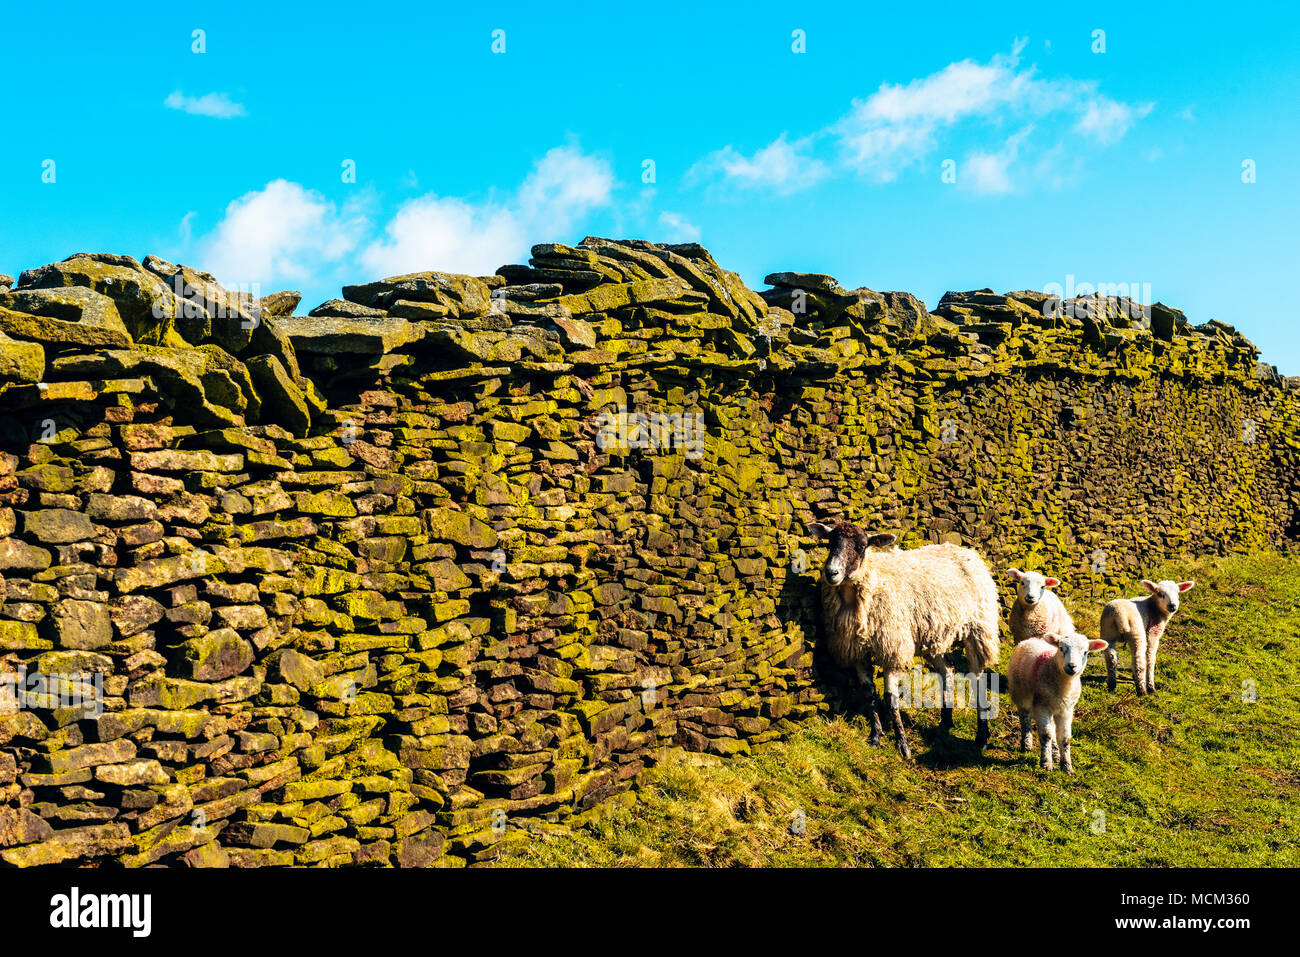 Sheep and lambs below dry-stone wall on Wiswell Moor, an outlier of Pendle Hill, Lancashire, England - Stock Image